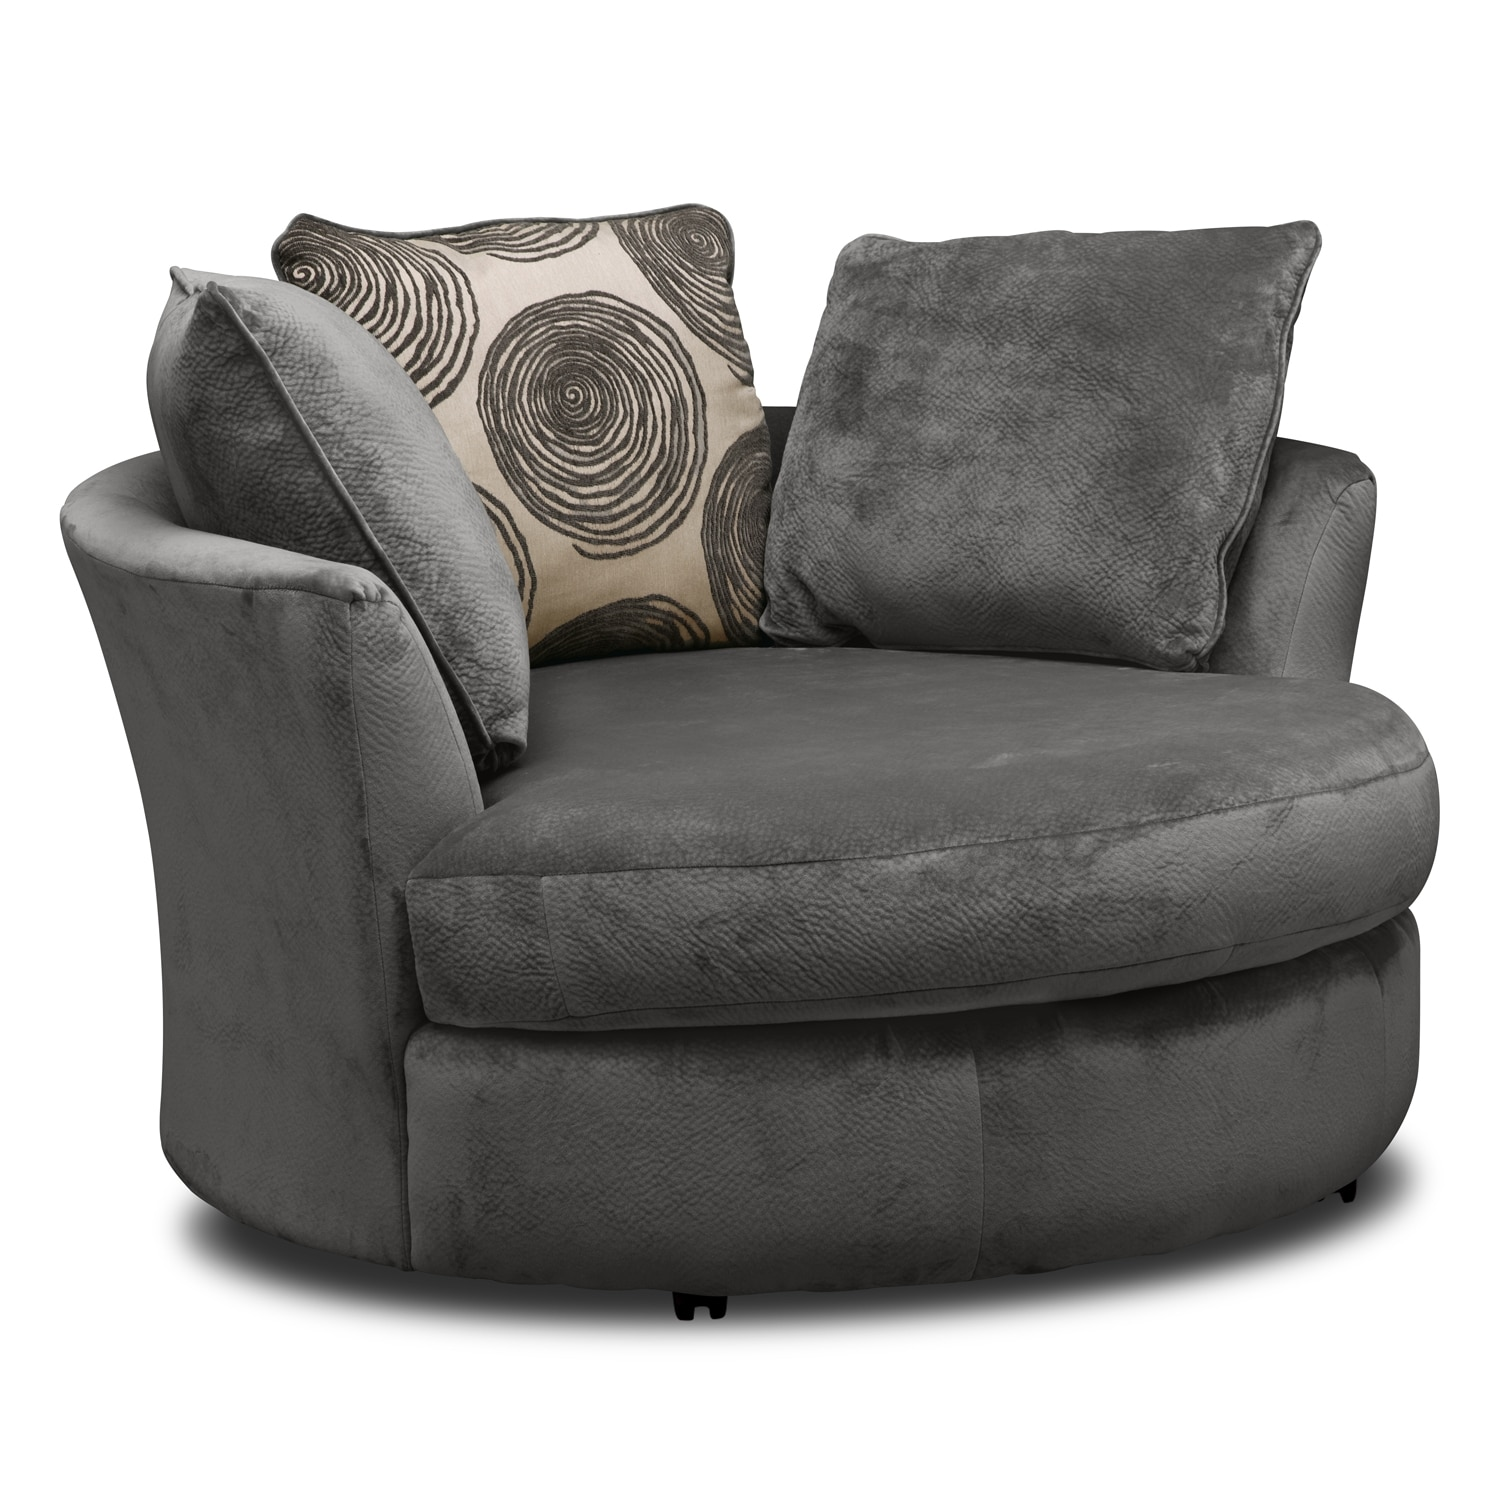 Grey Half Couch Cordelle Swivel Chair Gray Value City Furniture